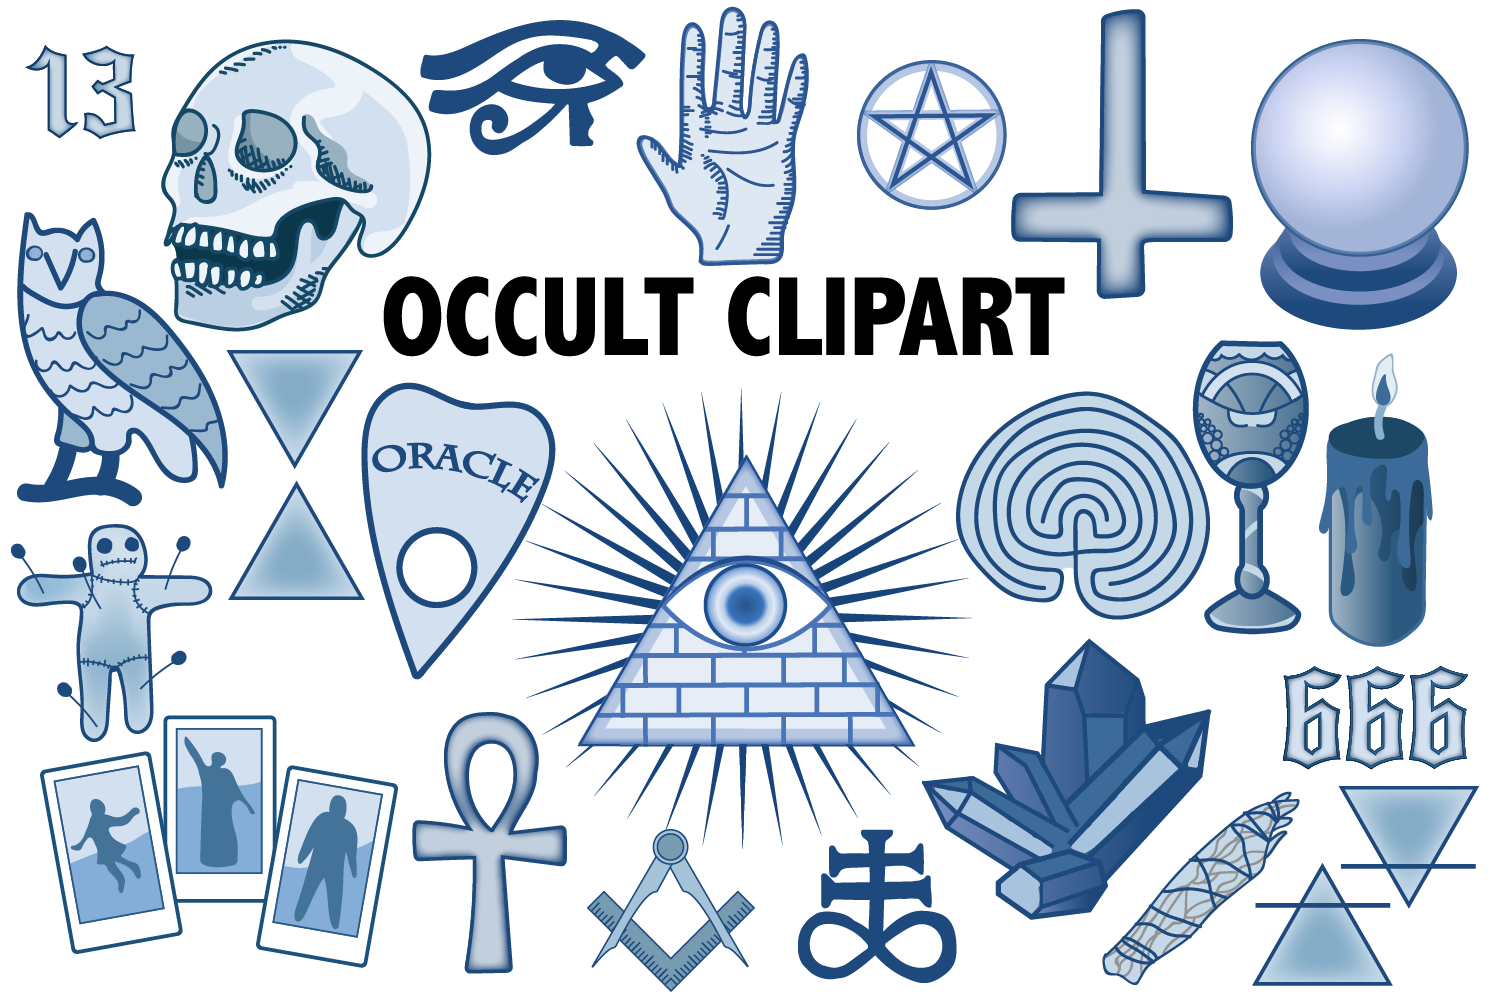 Download Free Occult Clipart Graphic By Mine Eyes Design Creative Fabrica for Cricut Explore, Silhouette and other cutting machines.